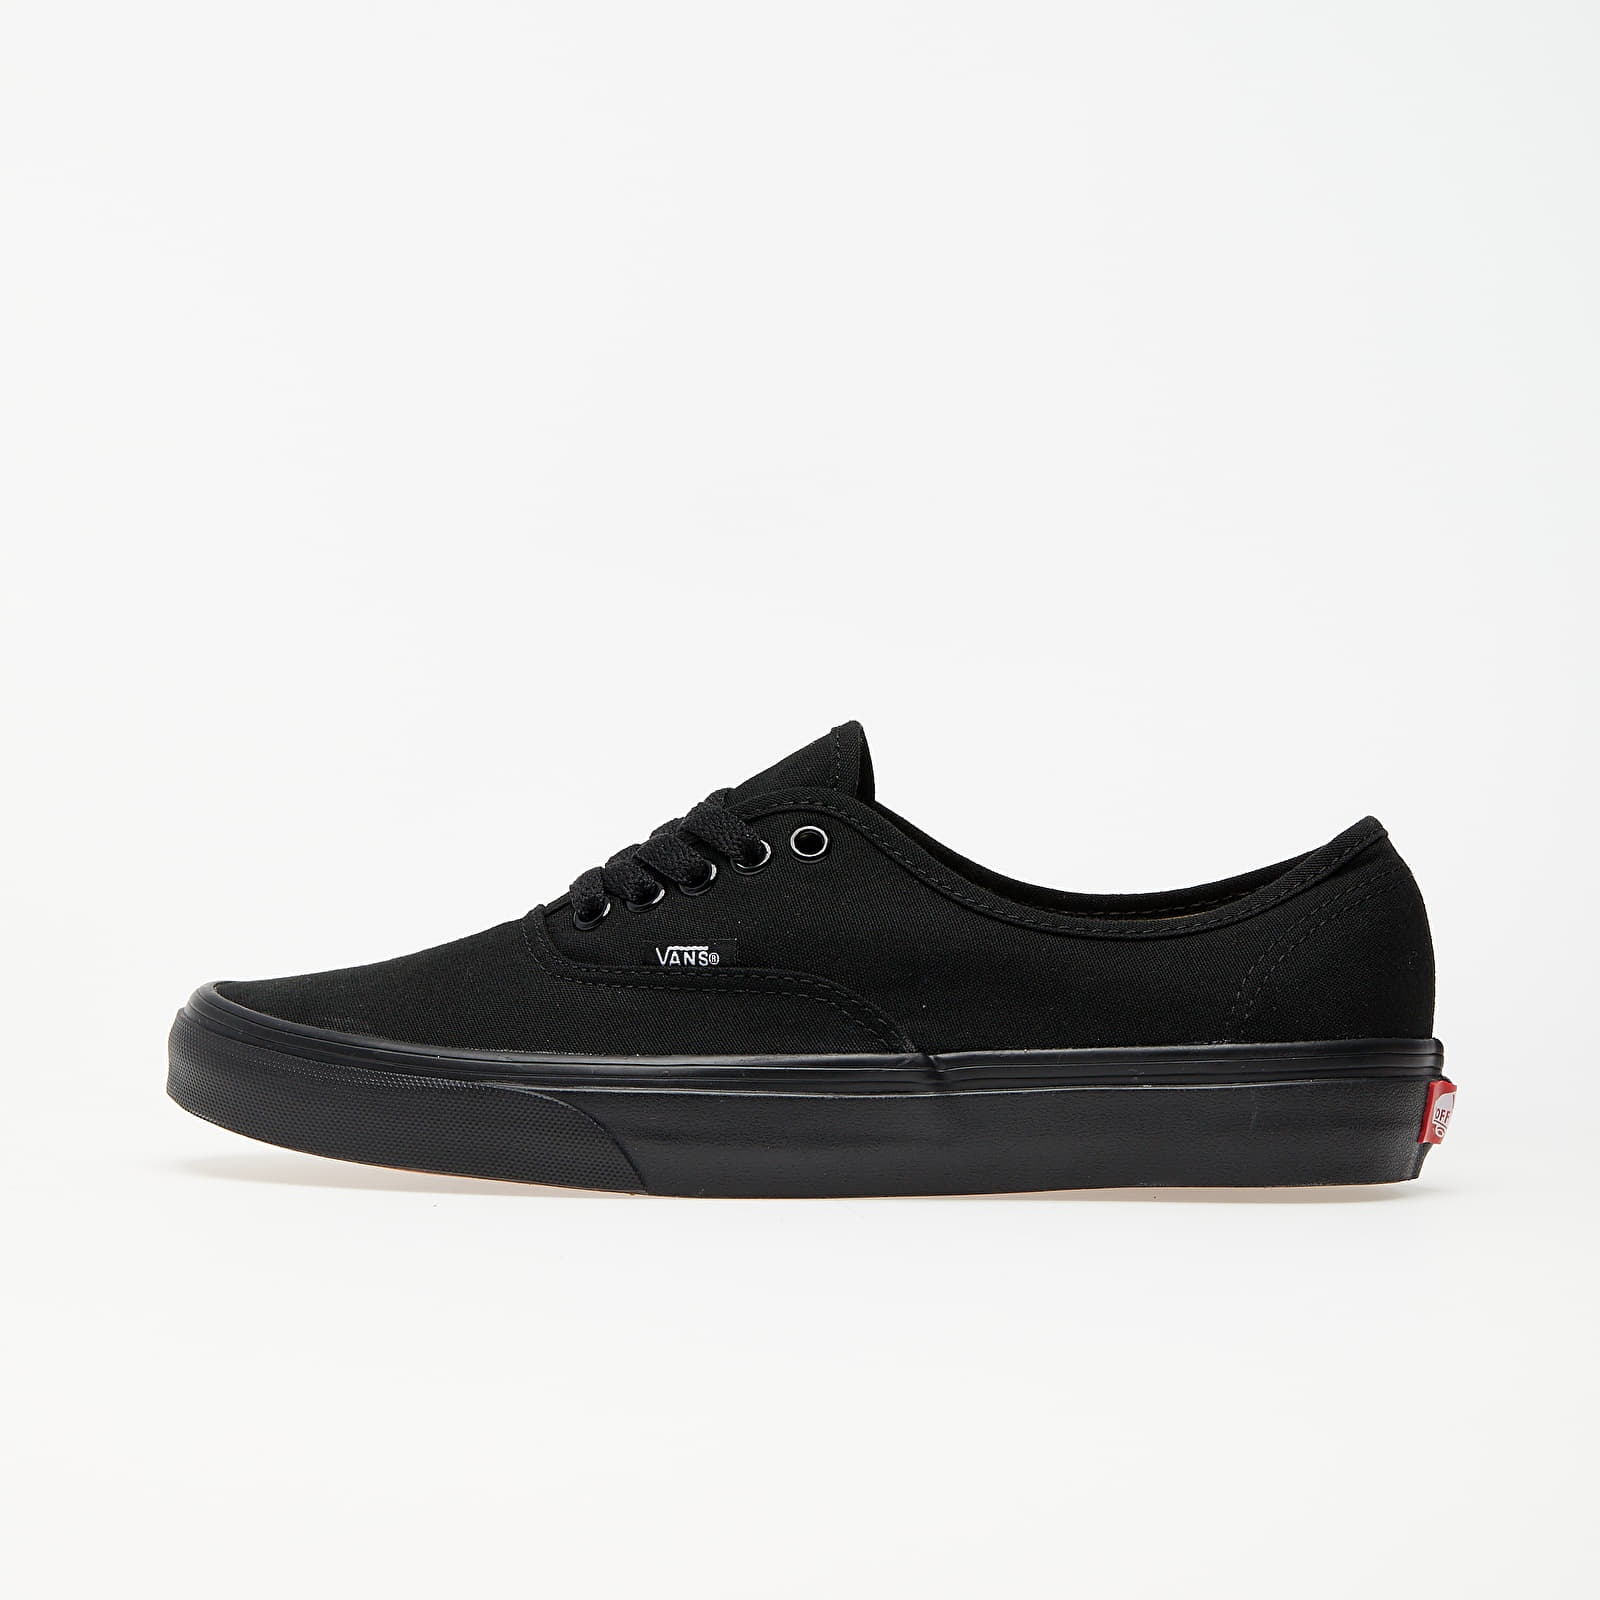 Férfi cipők Vans Authentic Canvas Black